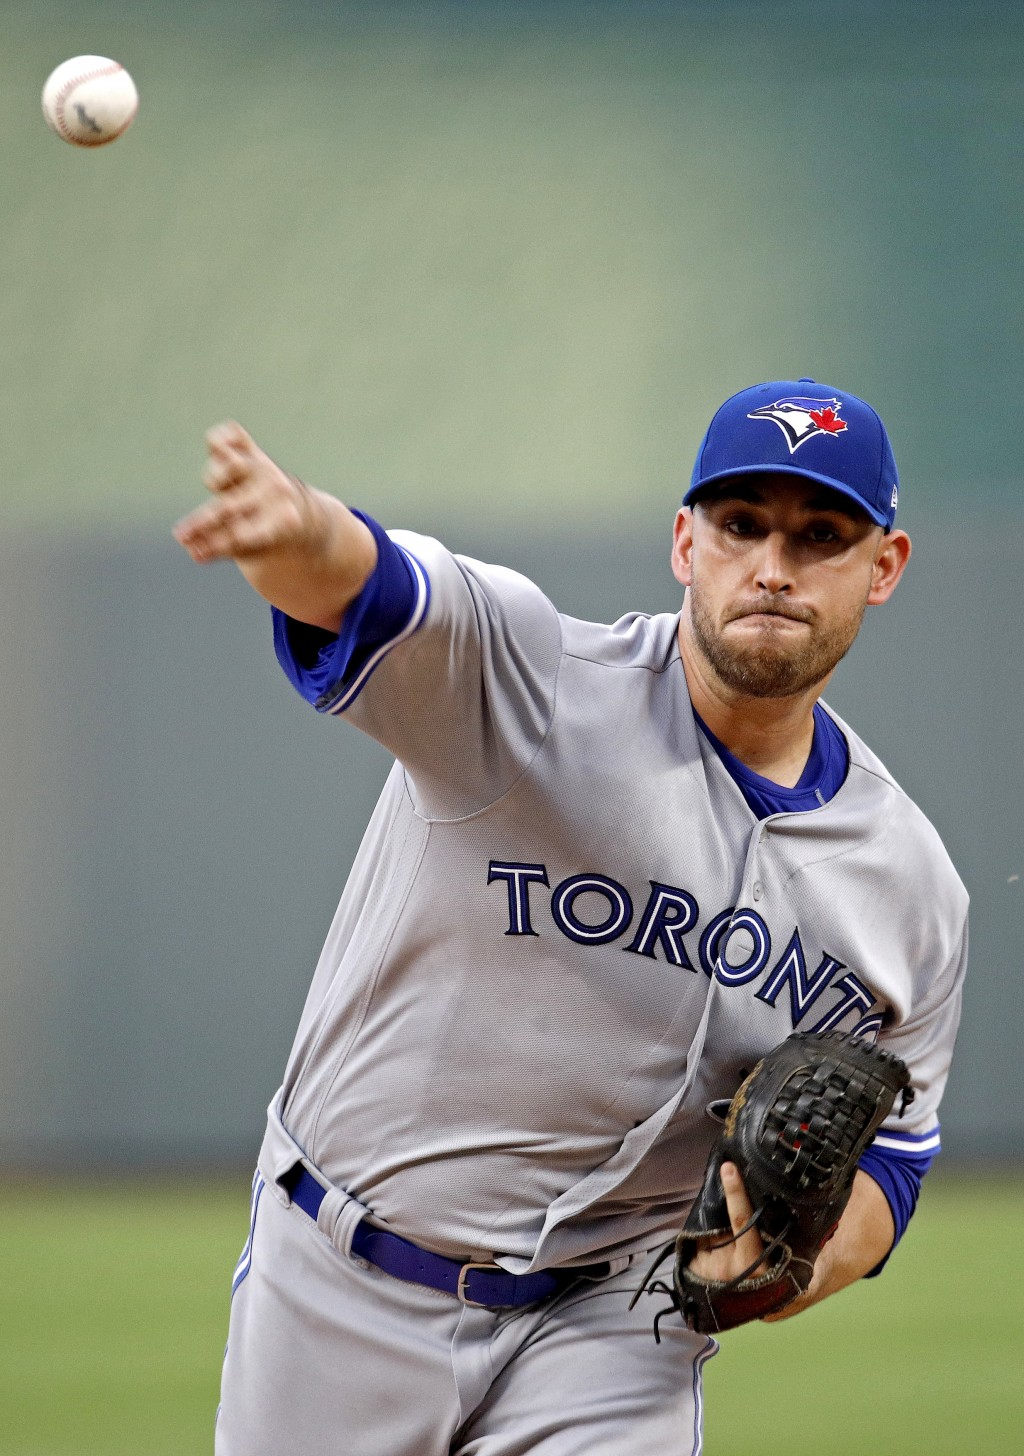 Toronto Blue Jays starting pitcher Marco Estrada throws during the first inning of the team's baseball game against the Kansas City Royals on Wednesda...